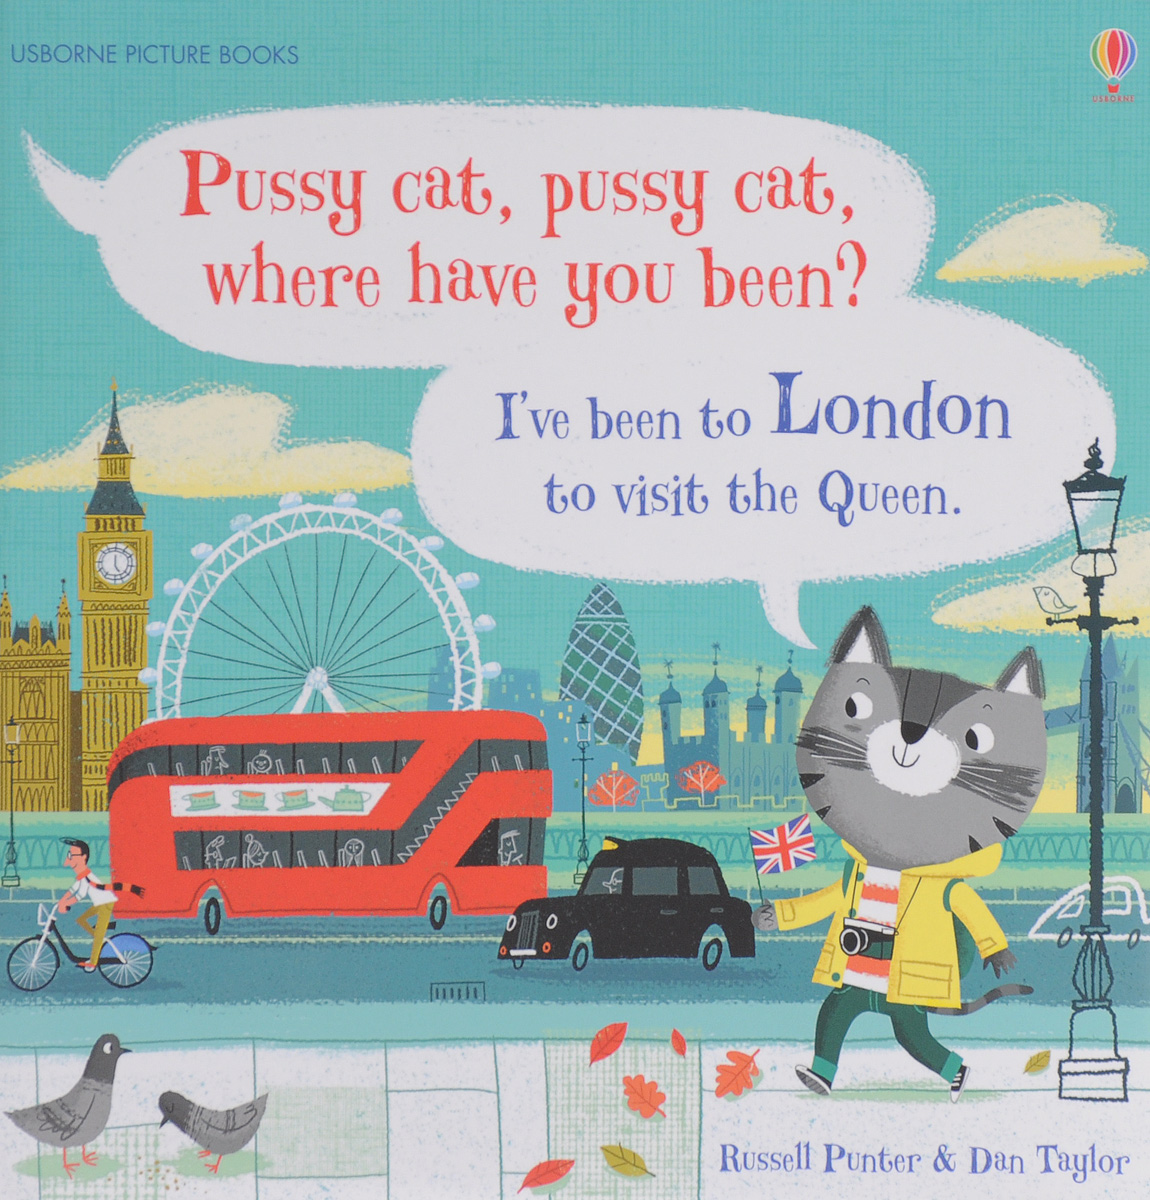 Pussy Cat, Pussy Cat, Where Have You Been? I've Been to London to Visit the Queen where have you been